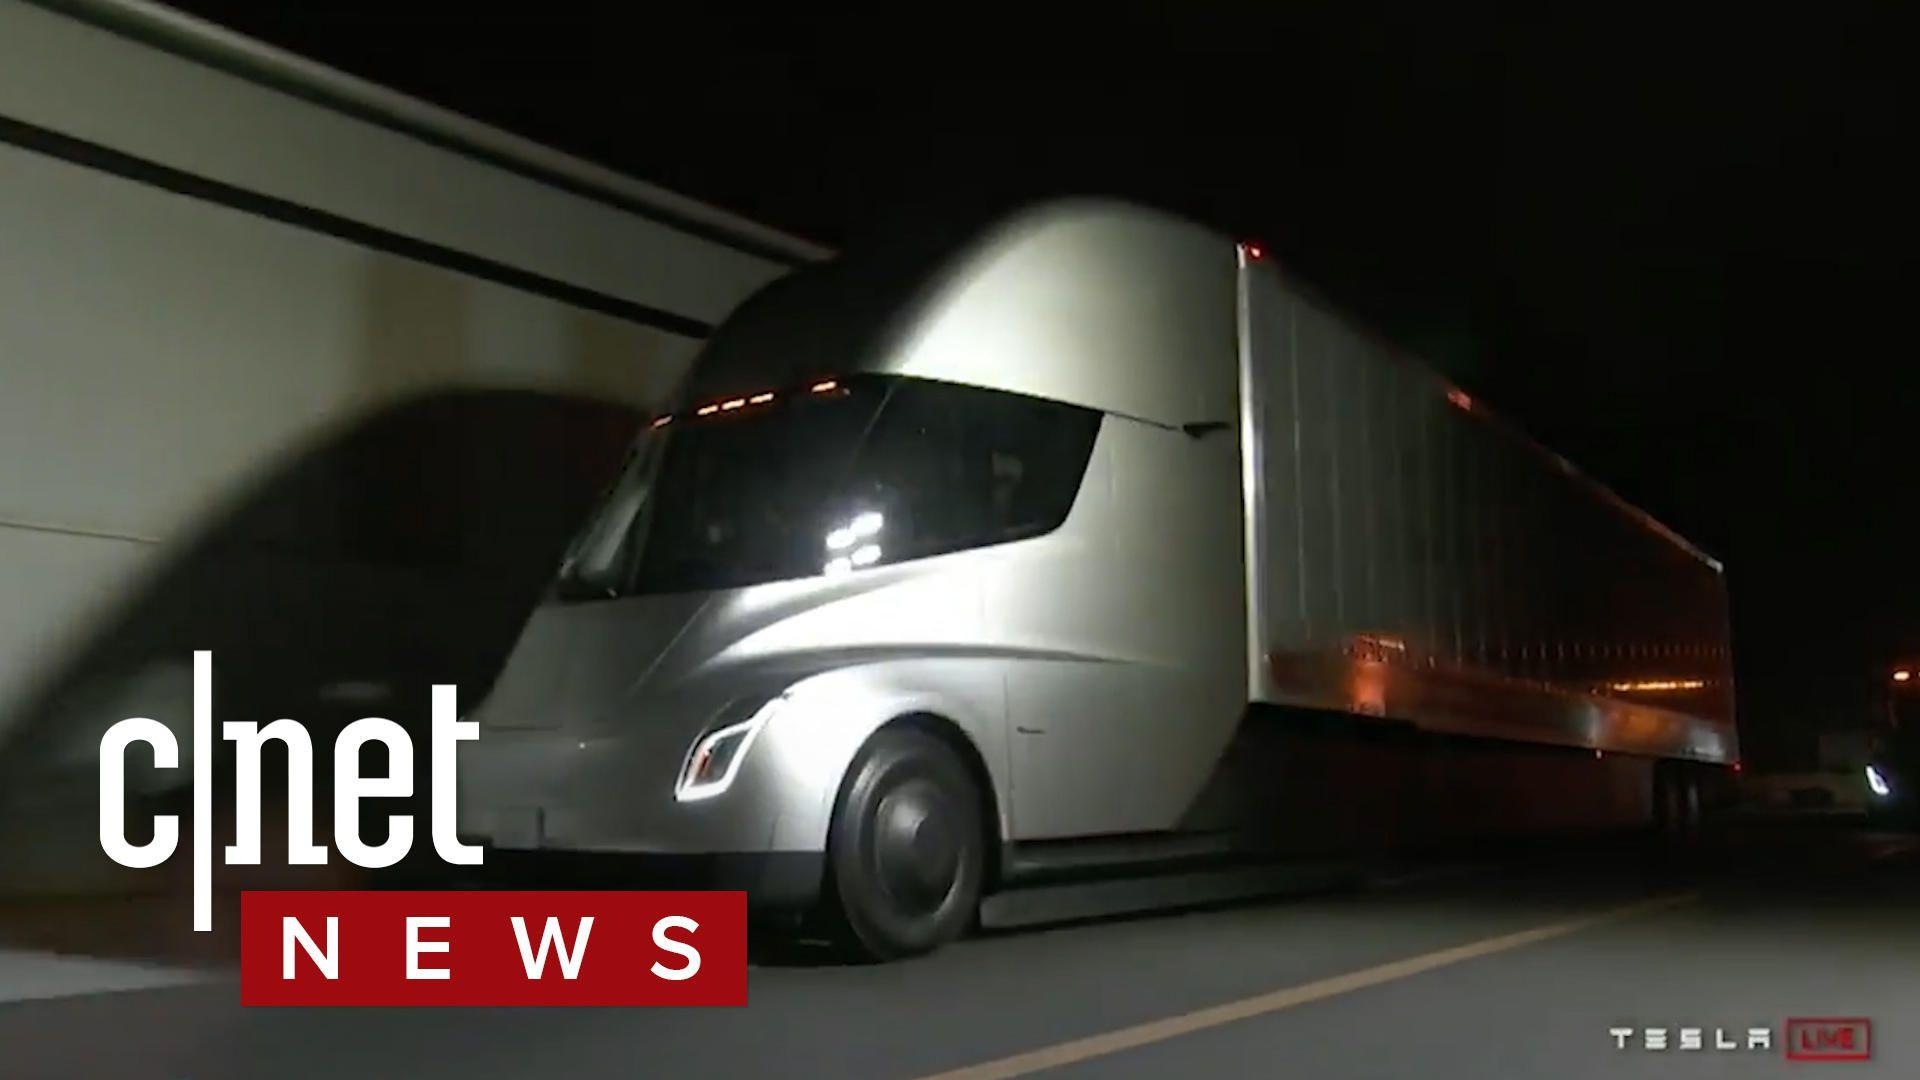 Tesla unveils Semi truck, EA makes changes to Star Wars Battlefront II